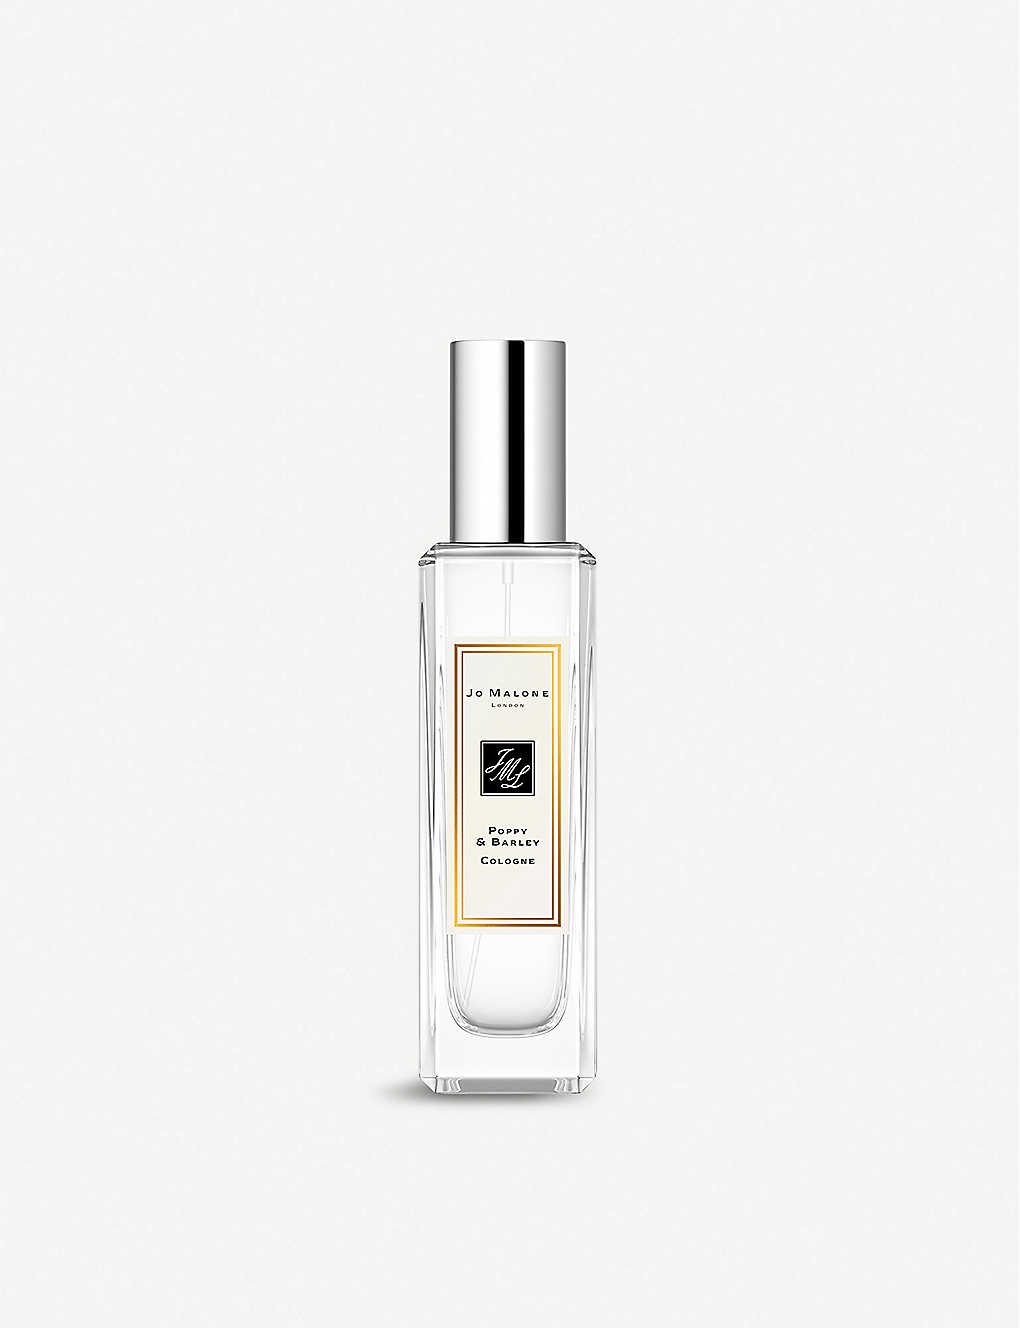 JO MALONE LONDON: Poppy and Barley cologne 30ml